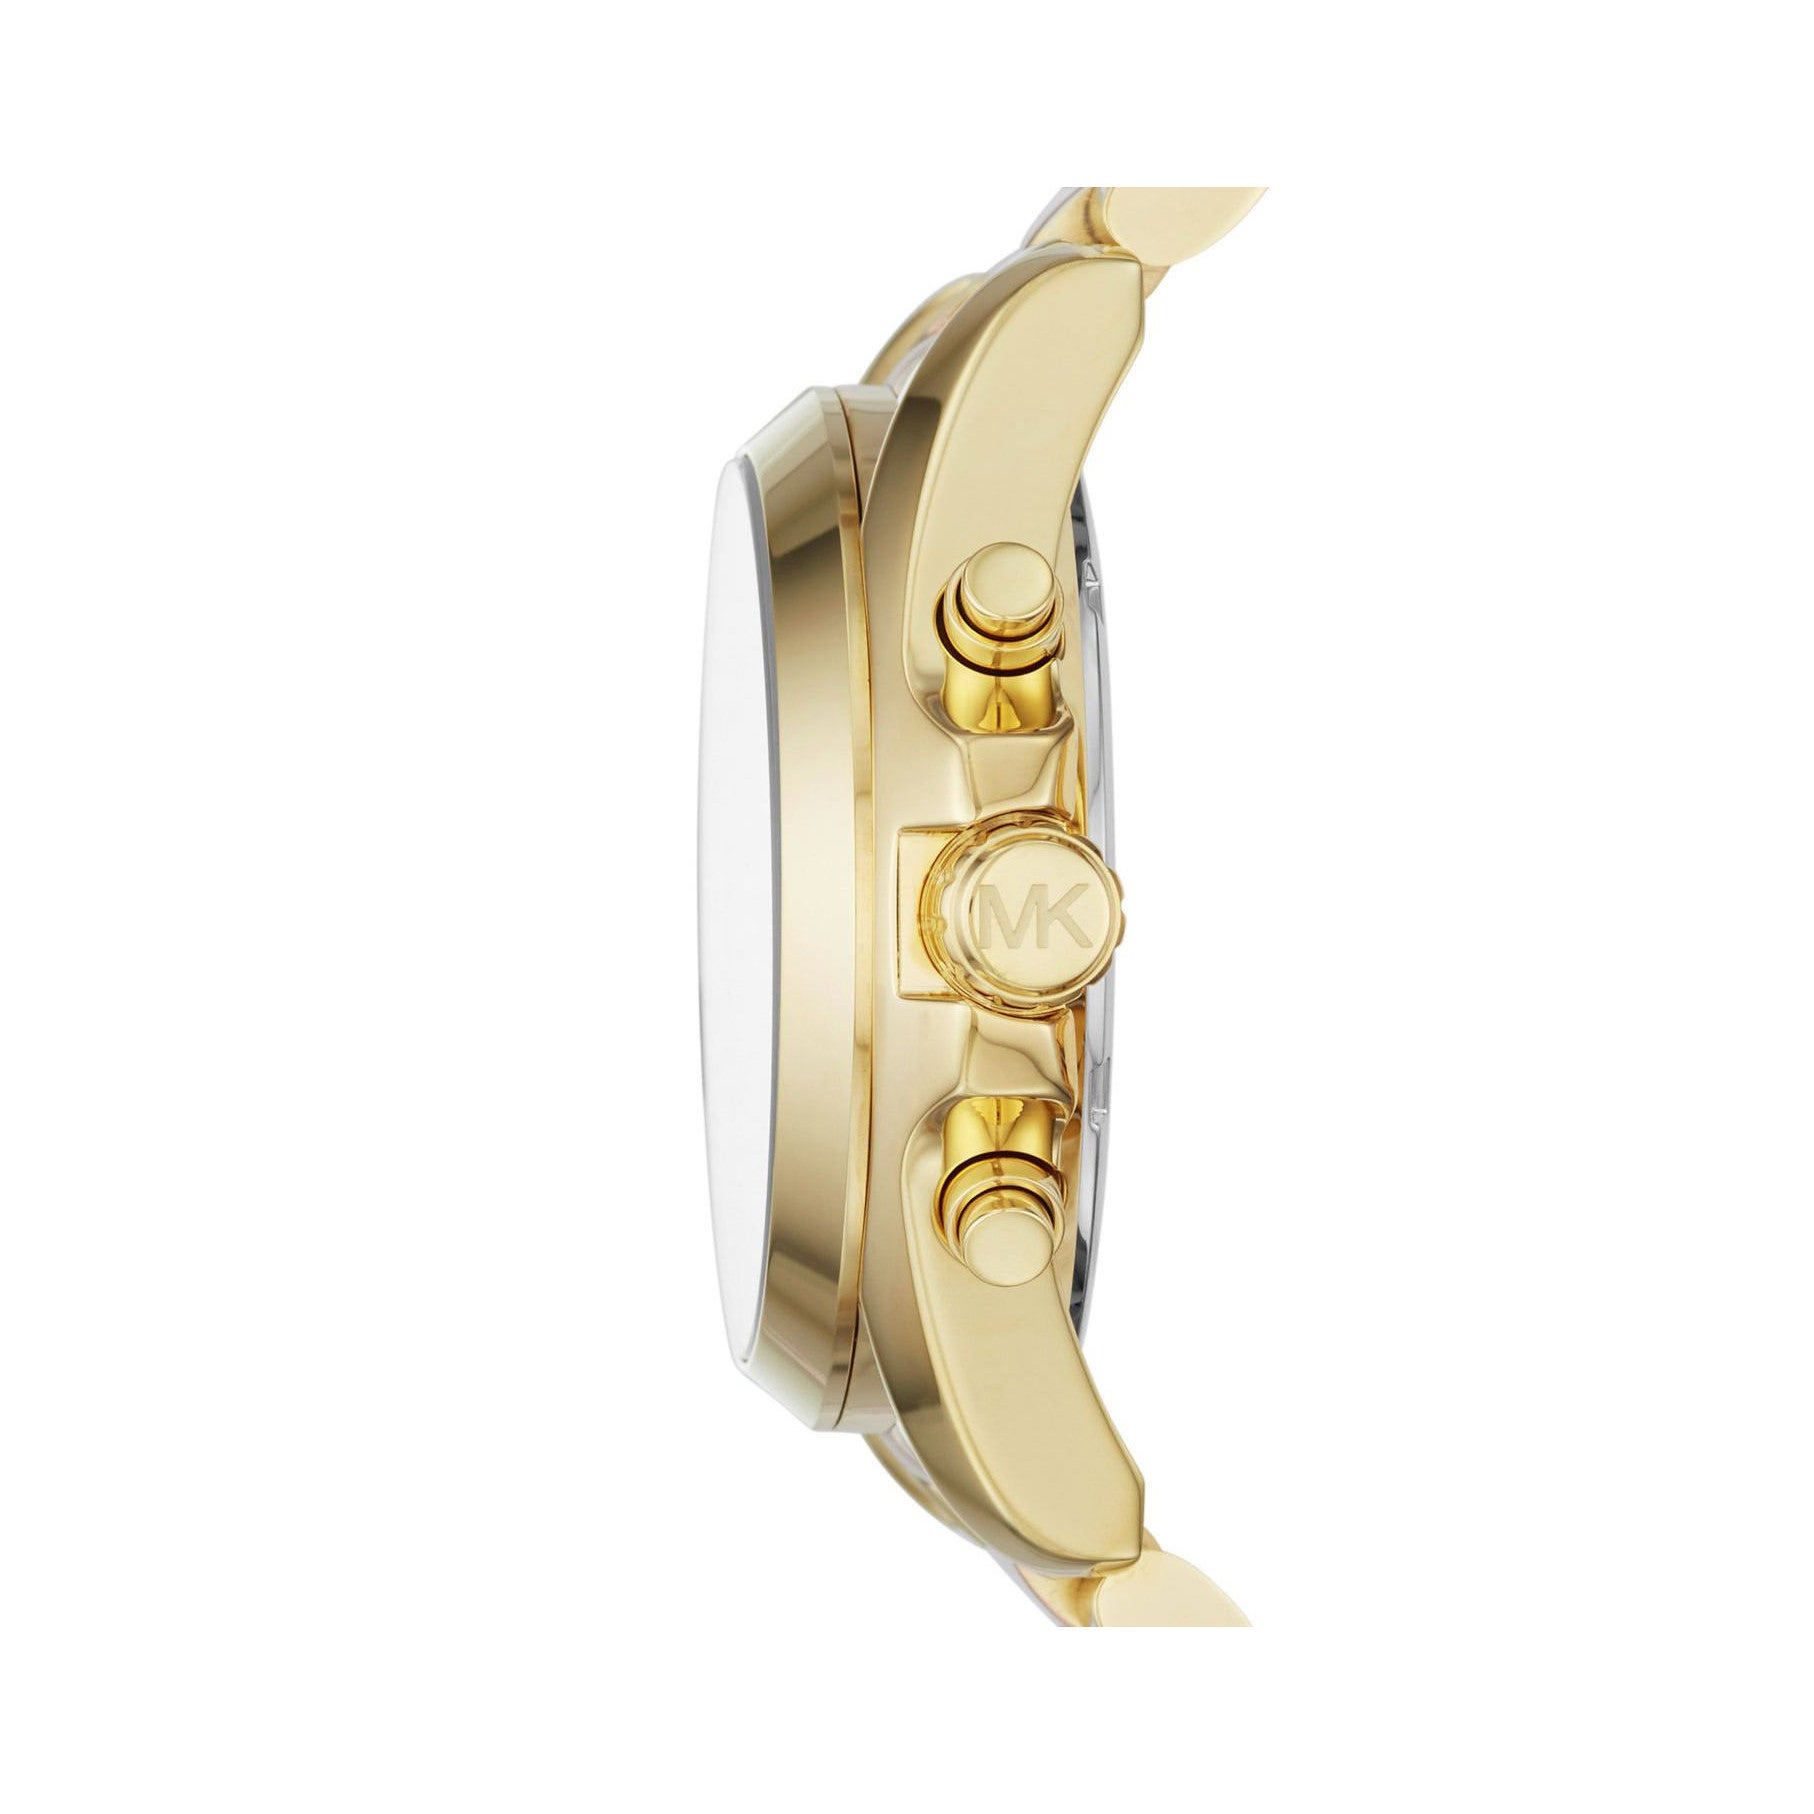 346fcab58e92 Shop Michael Kors Women s MK6359 Bradshaw Chronograph Stainless Steel Watch  - Gold - Free Shipping Today - Overstock - 15949813